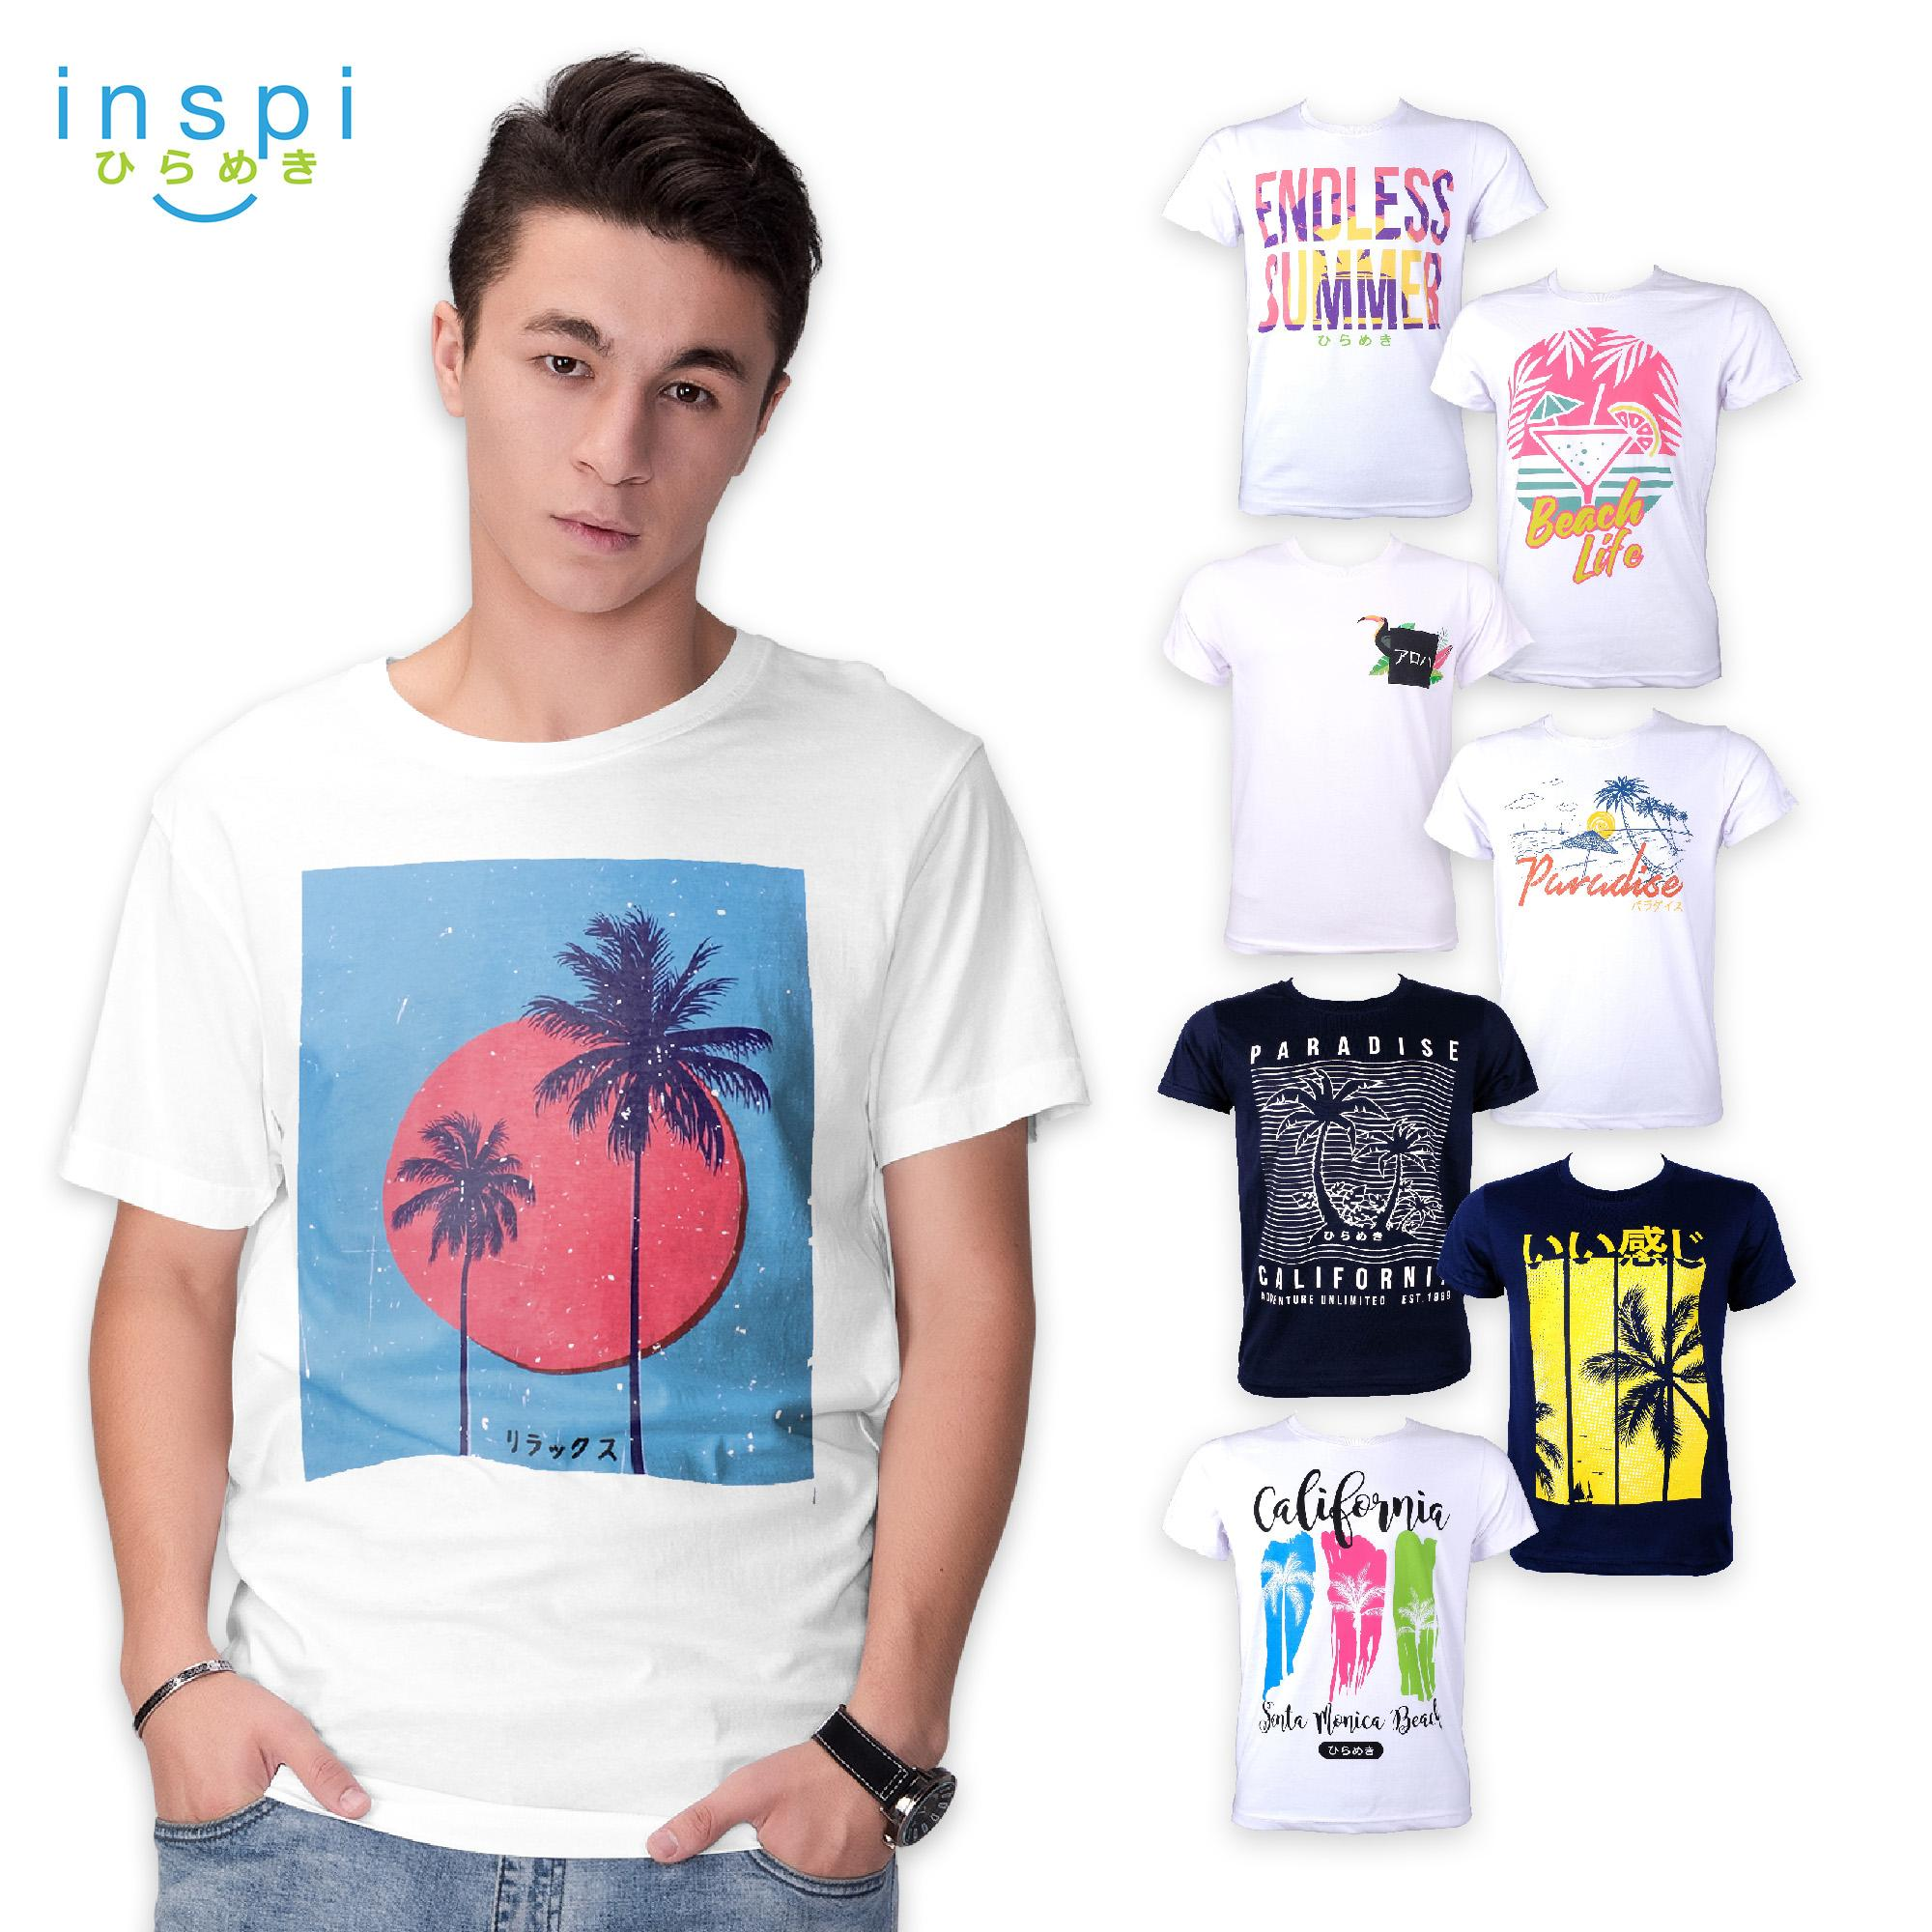 25831813367bf7 INSPI Tees Summer Collection tshirt printed graphic tee Mens t shirt shirts  for men tshirts sale